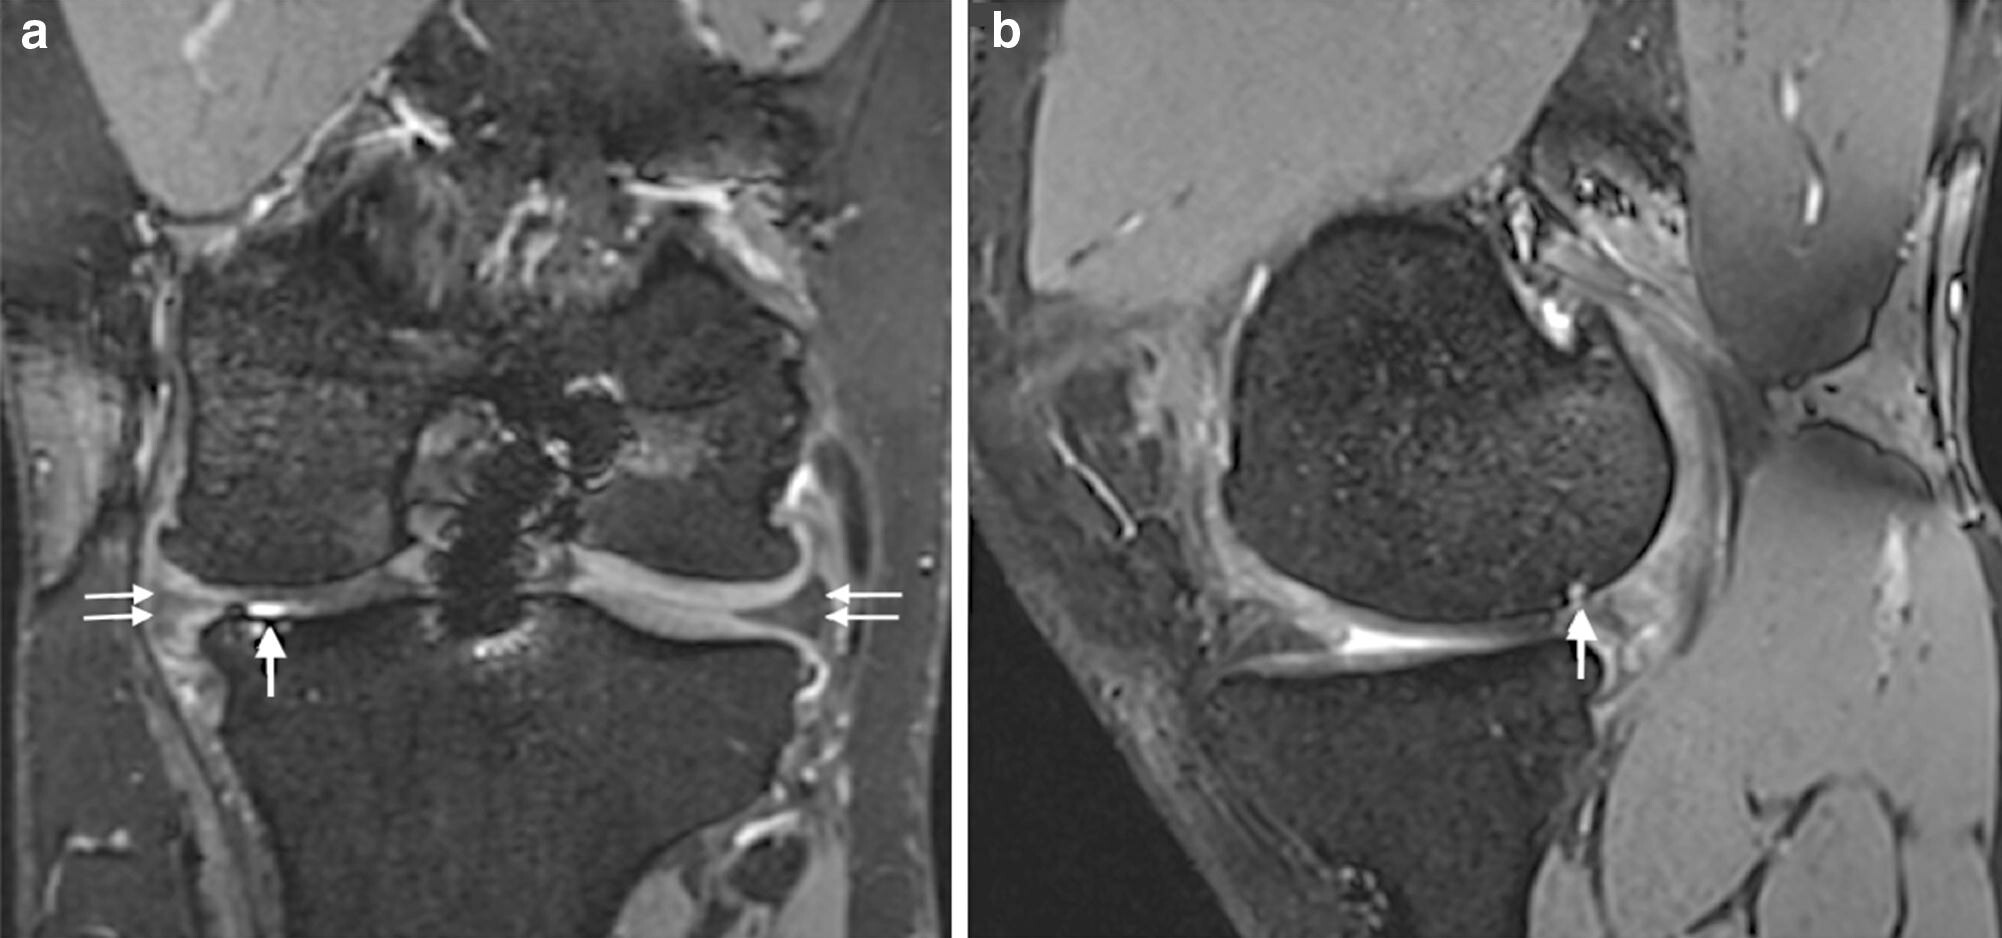 Coronal (a) and sagittal (b) reconstructions of 3D T2 True-FISP sequence. Left knee of a 30-year-old player 9years after ACLrevision surgery with combined partial medial meniscectomy. a Bilateral meniscal extrusion of ≥ 2mm (double arrows) resulting in a meniscus score of 4 on both sides. a, b Chondral grade 4 lesion to the medial femur condyle and tibial plateau (thick arrows), resulting in a medial tibiofemoral cartilage score of 32. b Probable chronic postero-medial subluxation of the medial femur condyle.